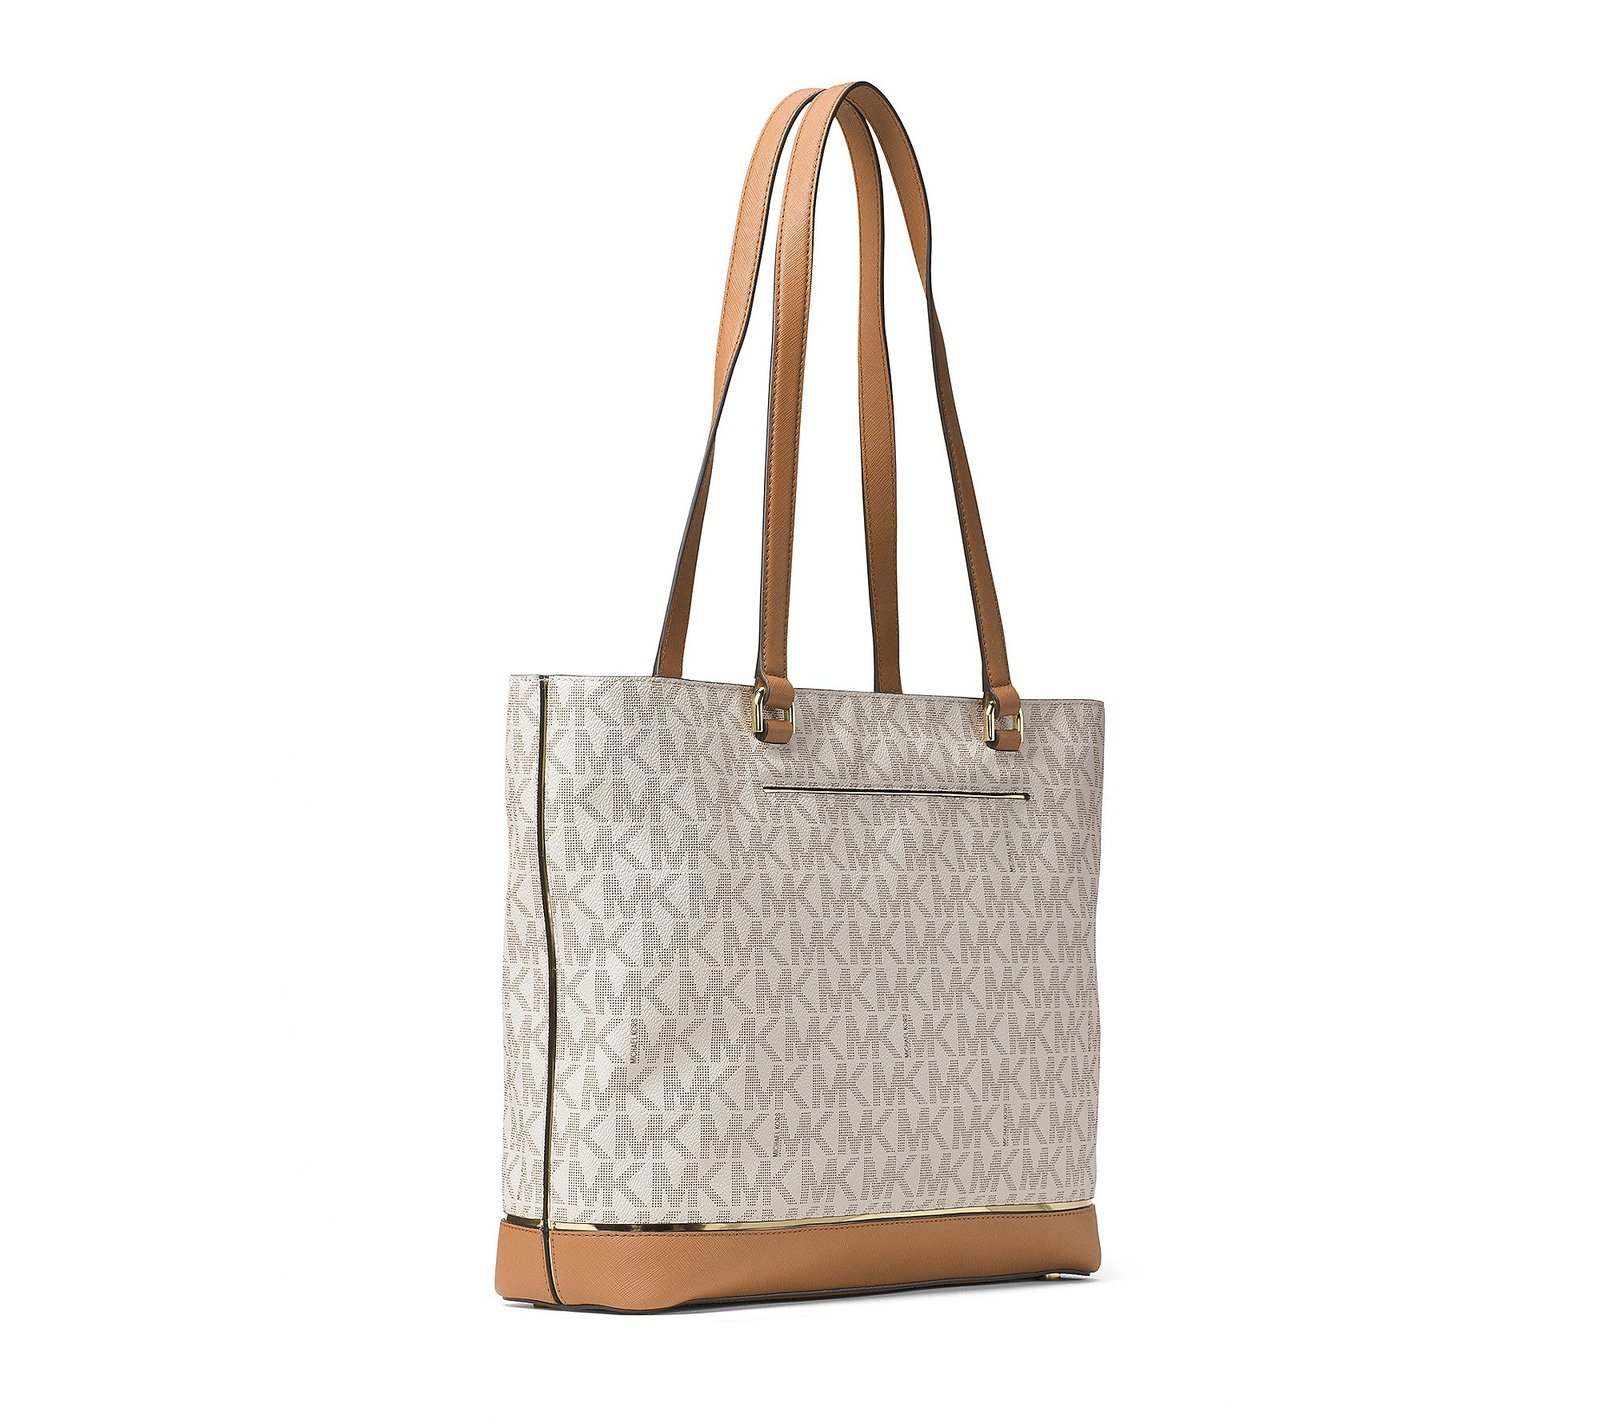 dbbbbf9befae MICHAEL Michael Kors Frame Out Item Large North South Tote (Vanilla)